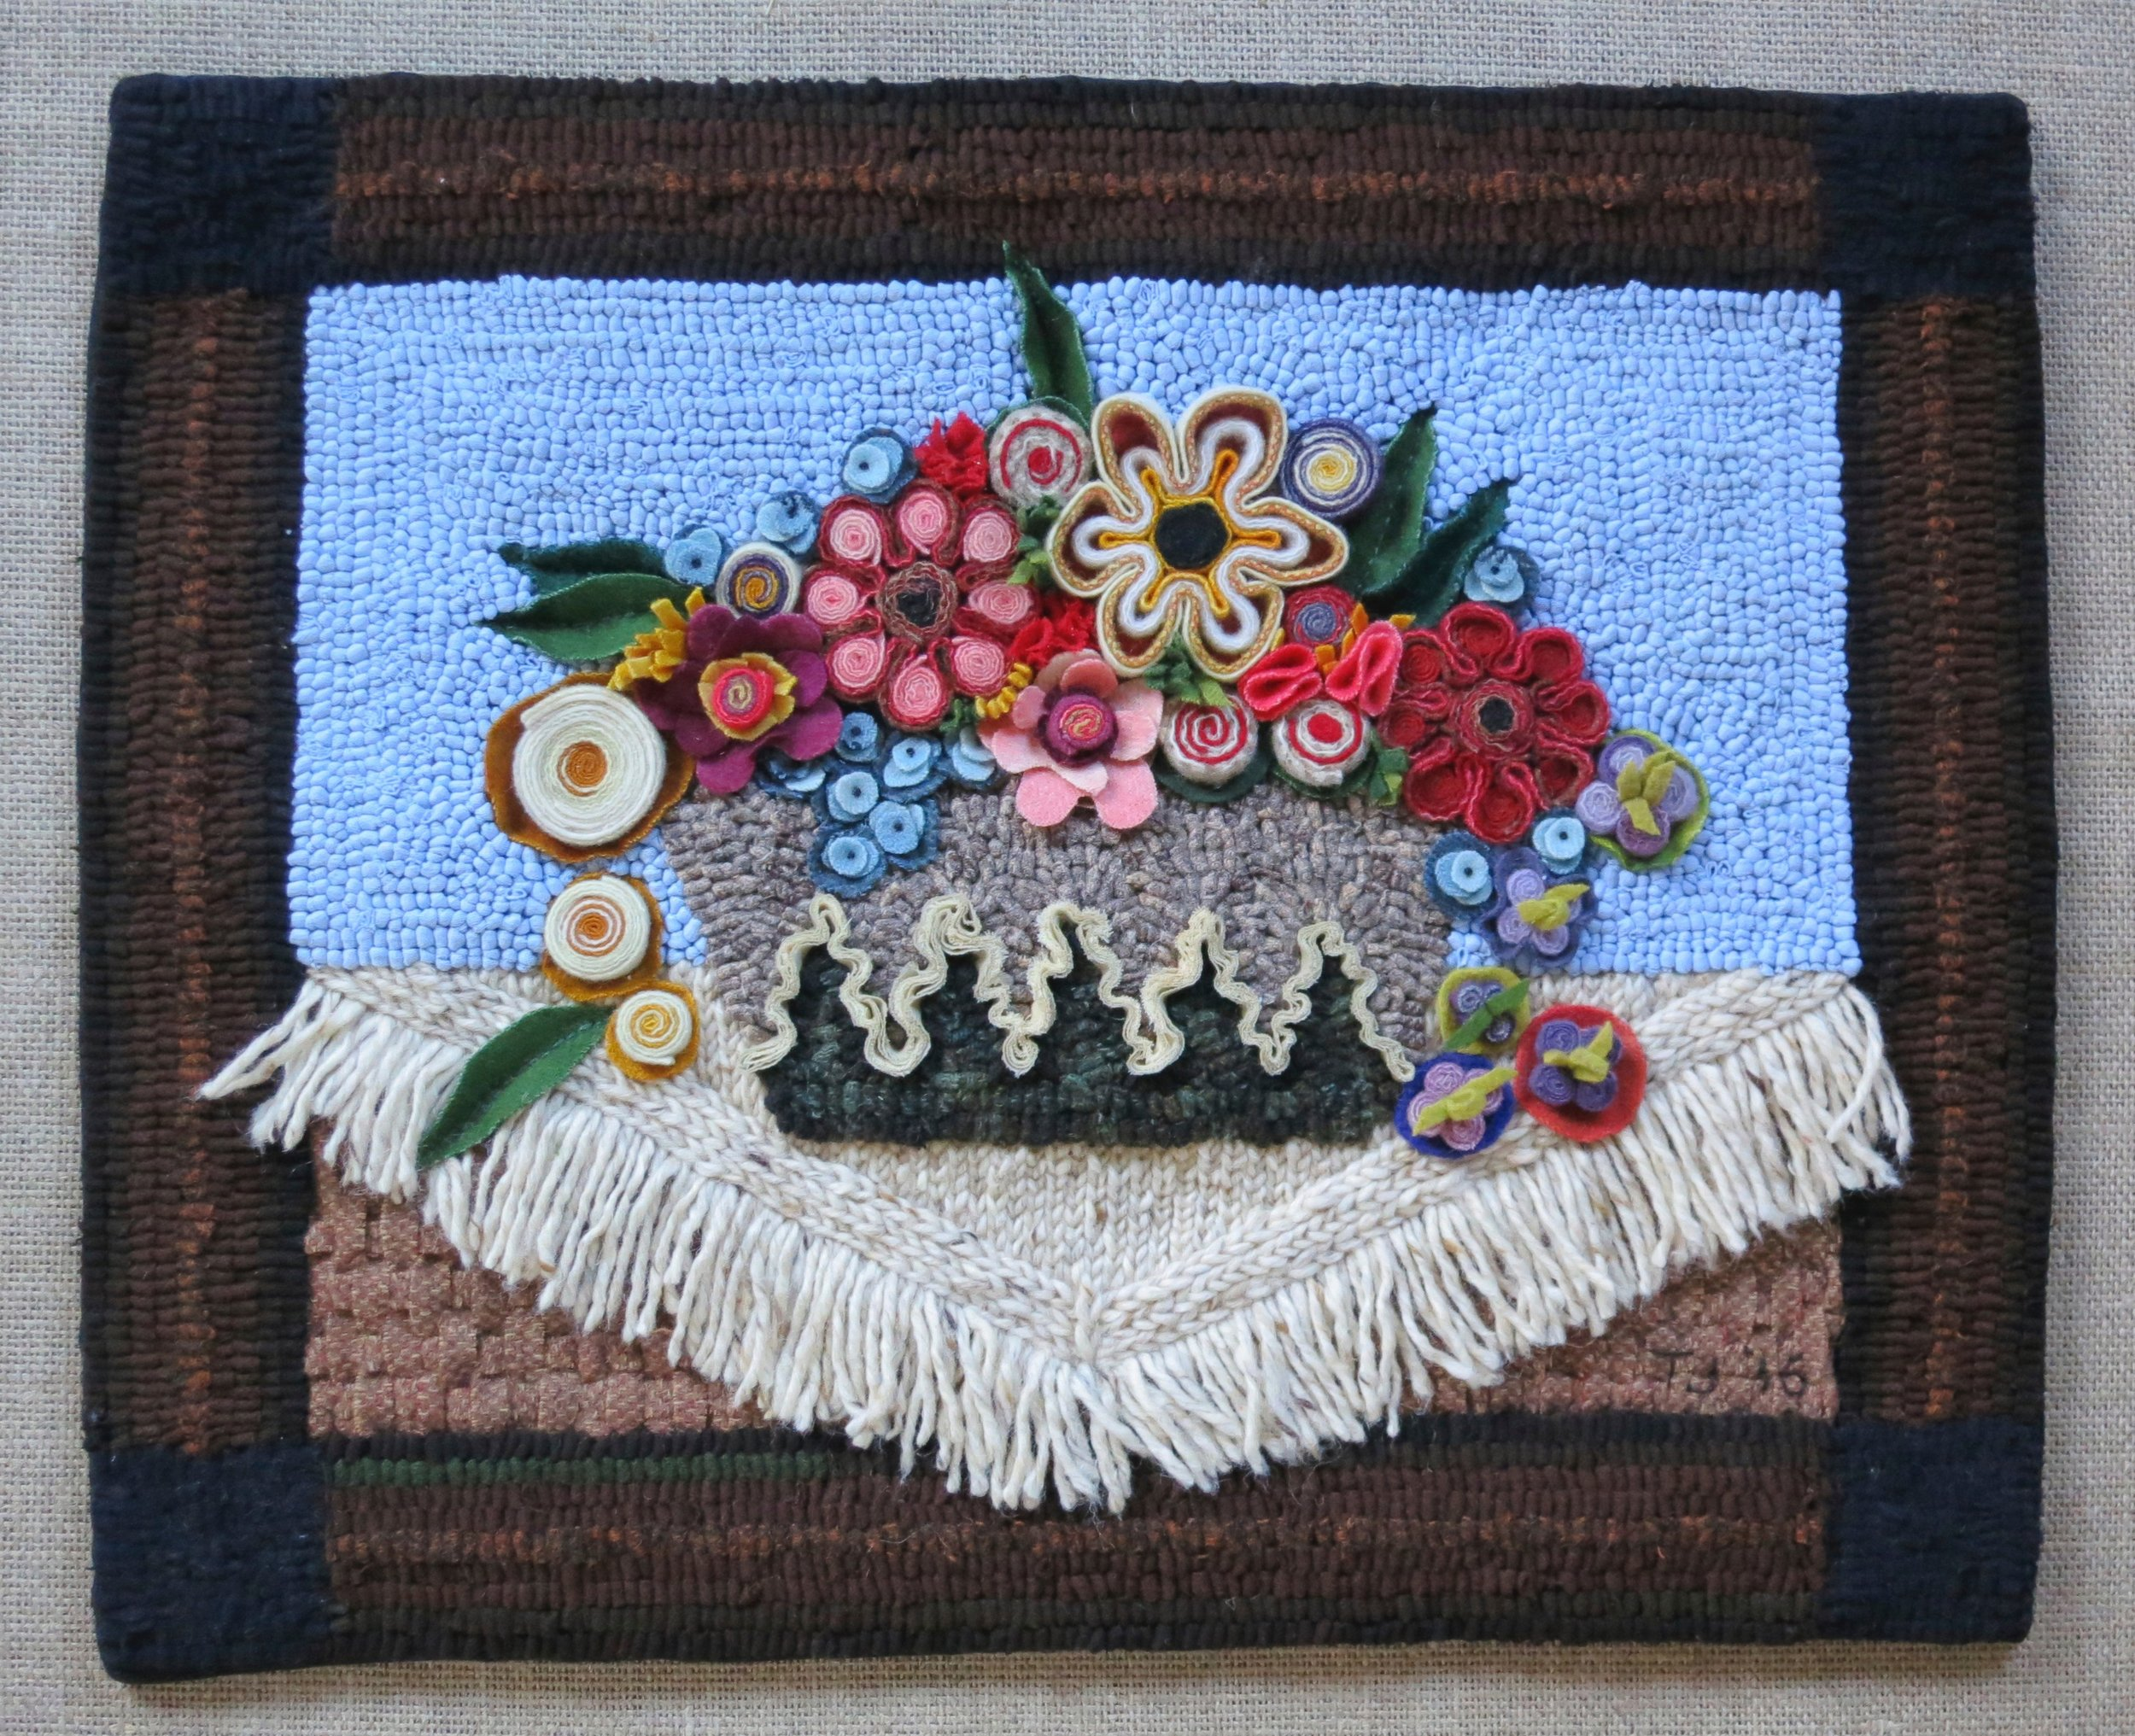 """Frank's Flower Pot   2016 16"""" x 20"""" Wool coiled, standing wool, chain stitched, b ias shirred, woven, bundle shirred, fringed and appliqued;   cotton knit hand hooked.    Frank's Flower Pot finished,pattern available in Shop Section."""